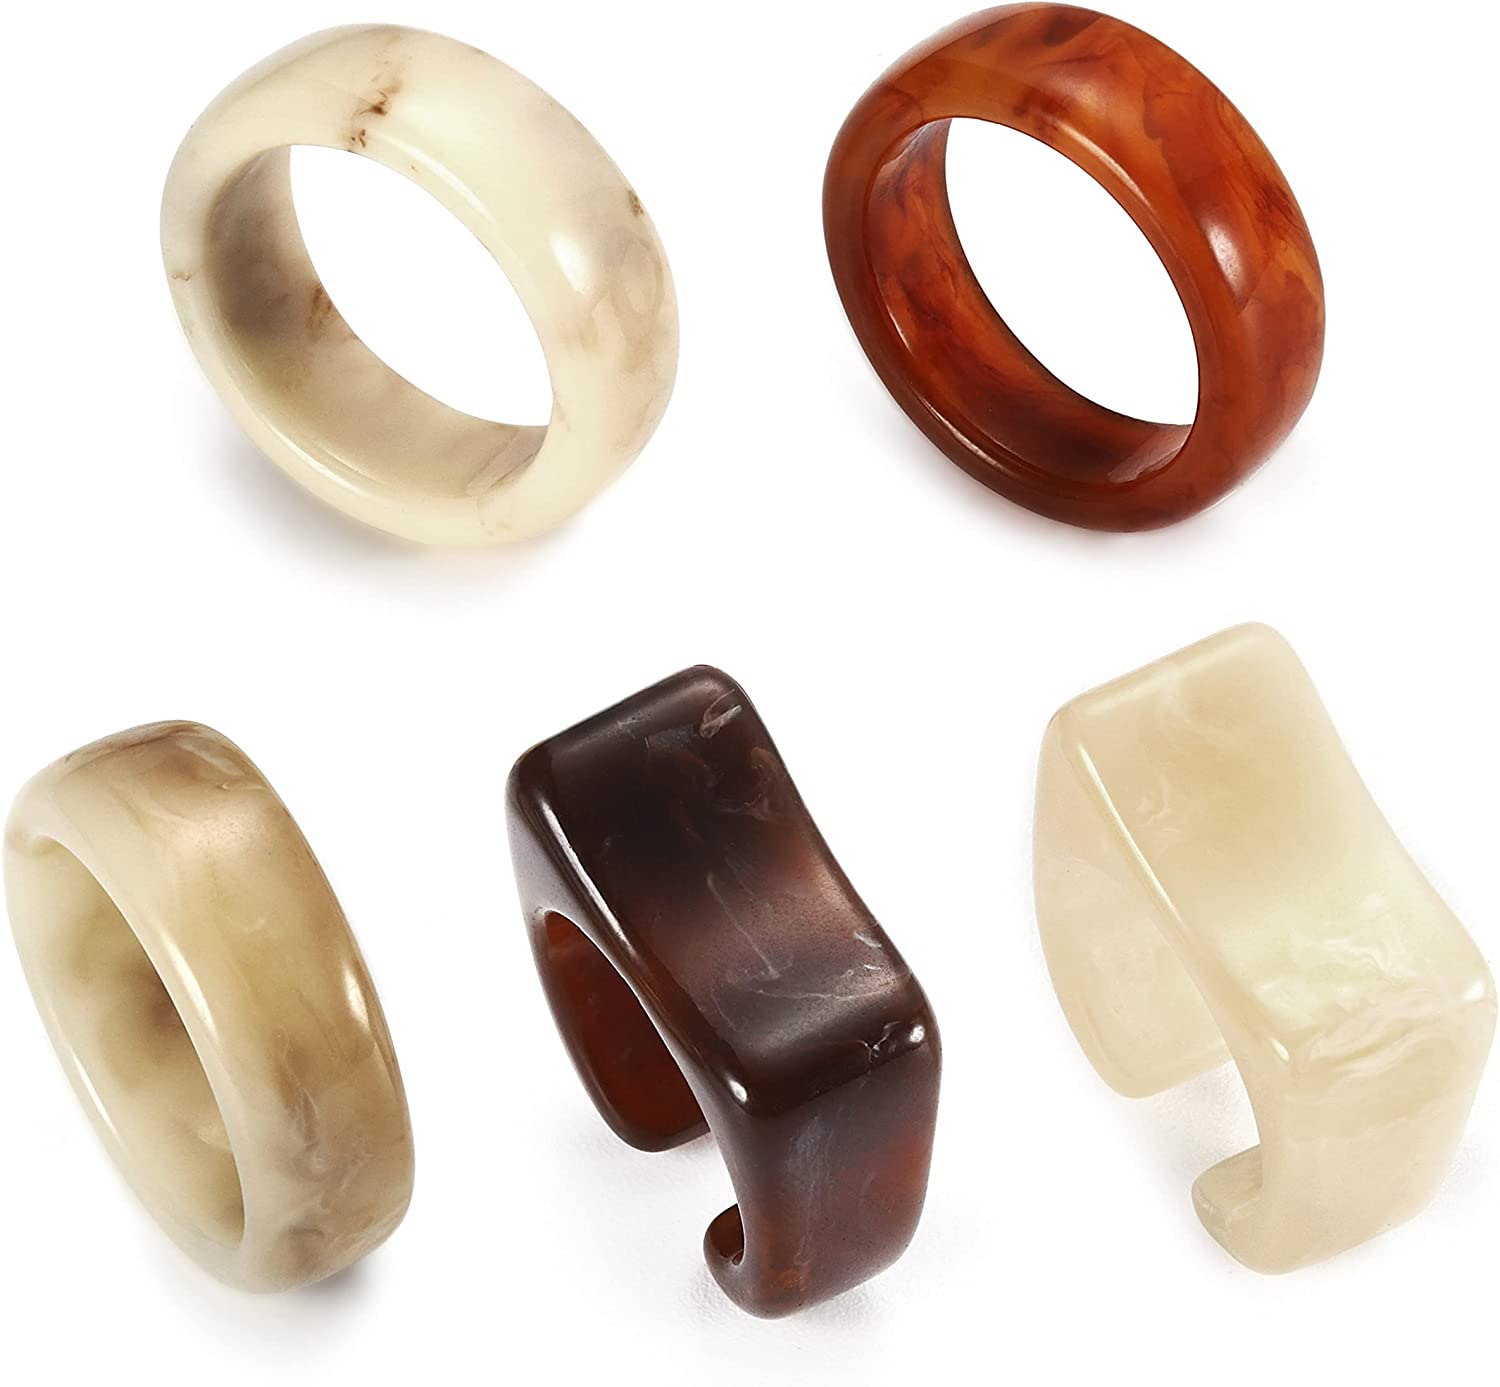 Hayoso Chunky Rings Colorful Resin Acrylic Rings for Women Teen Girls, Vintage Stacking Rings Square Transparent Rings Trendy Jewelry